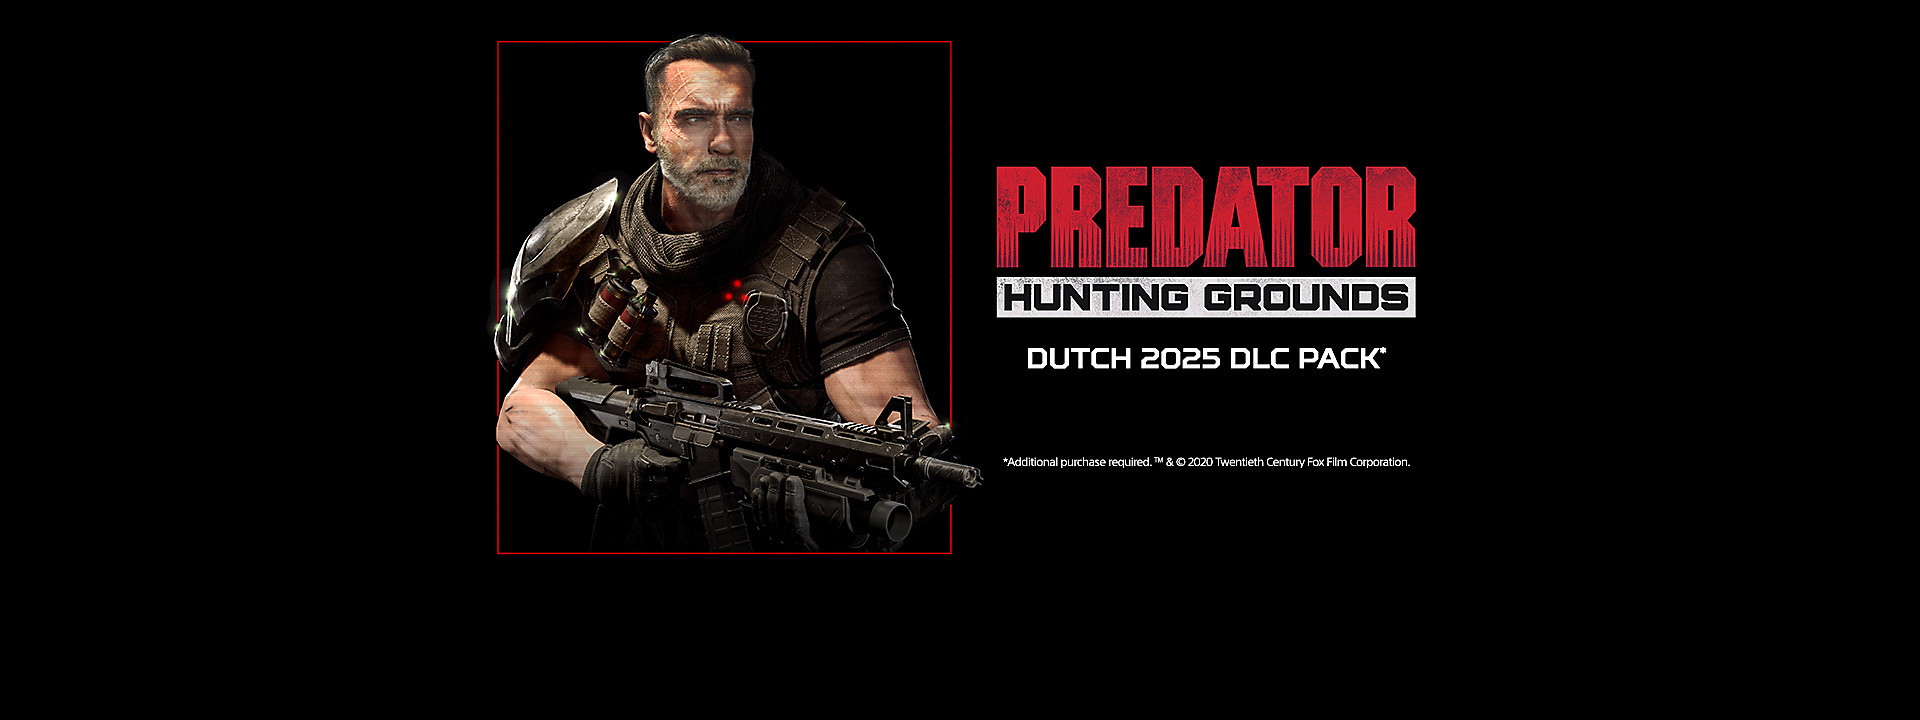 Predator: Hunting Grounds - DLC Now Available